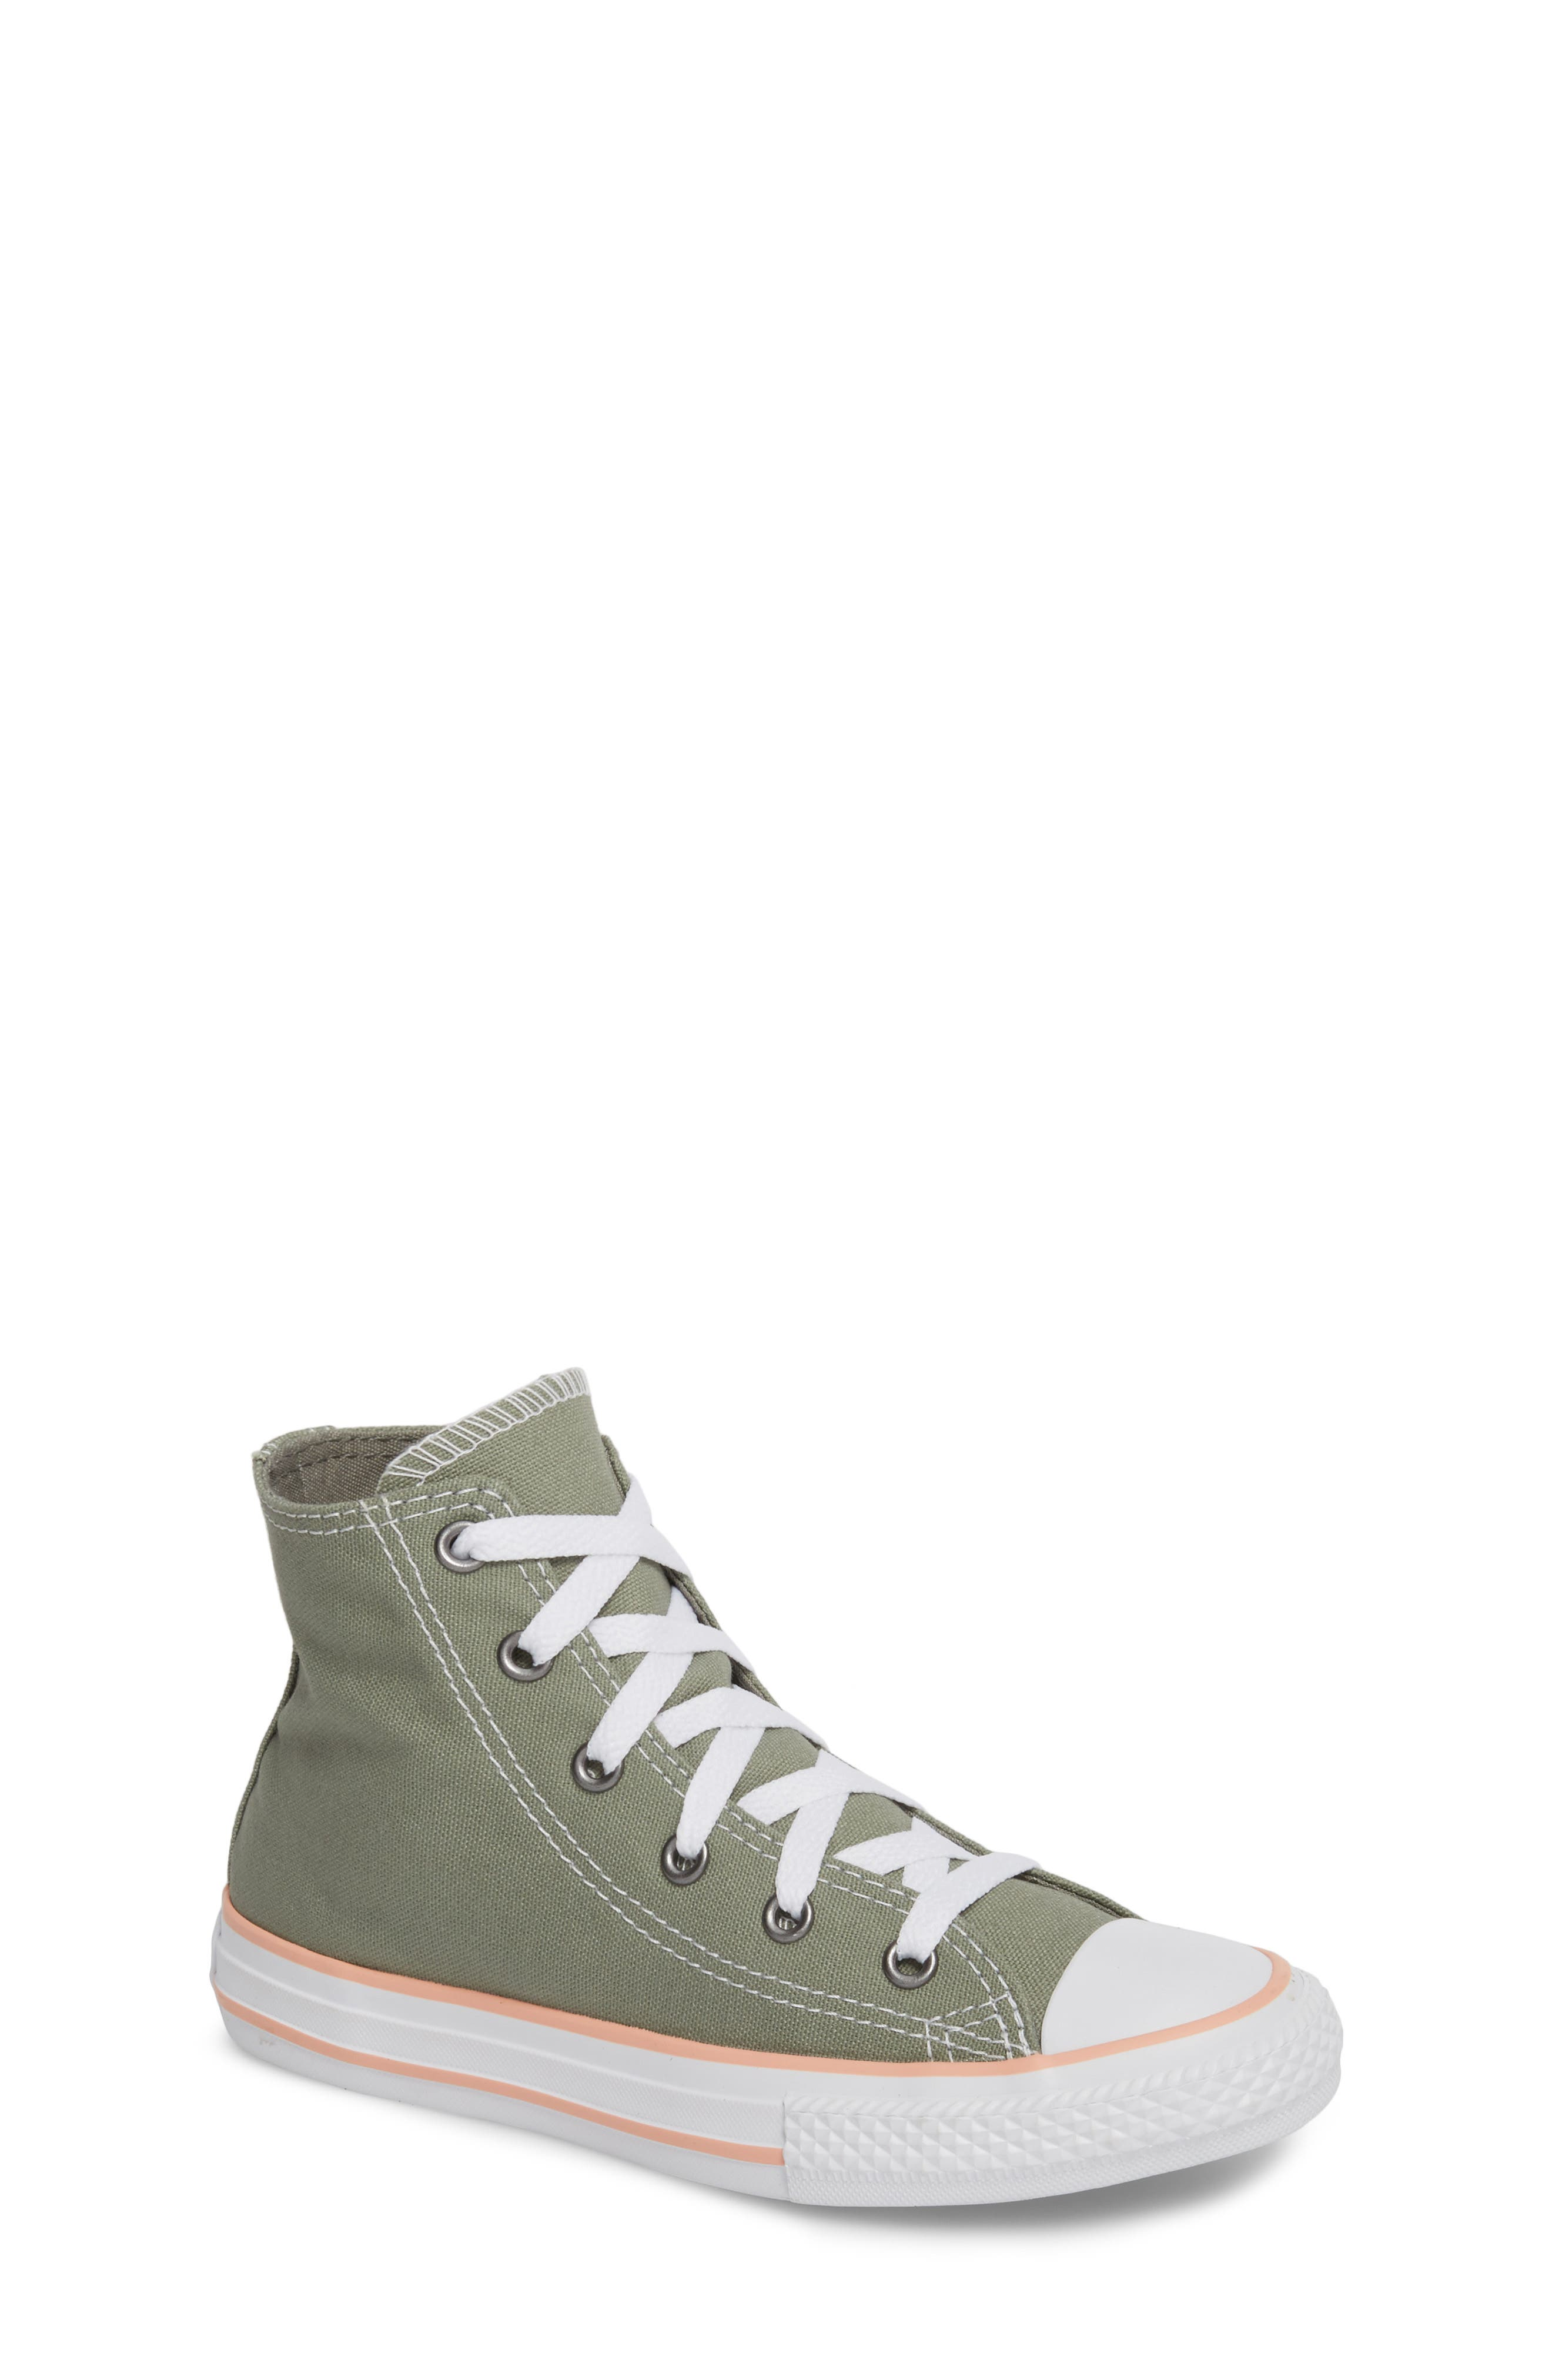 Converse Chuck Taylor® All Star® High Top Sneaker (Baby, Walker, Toddler, Little Kid & Big Kid)